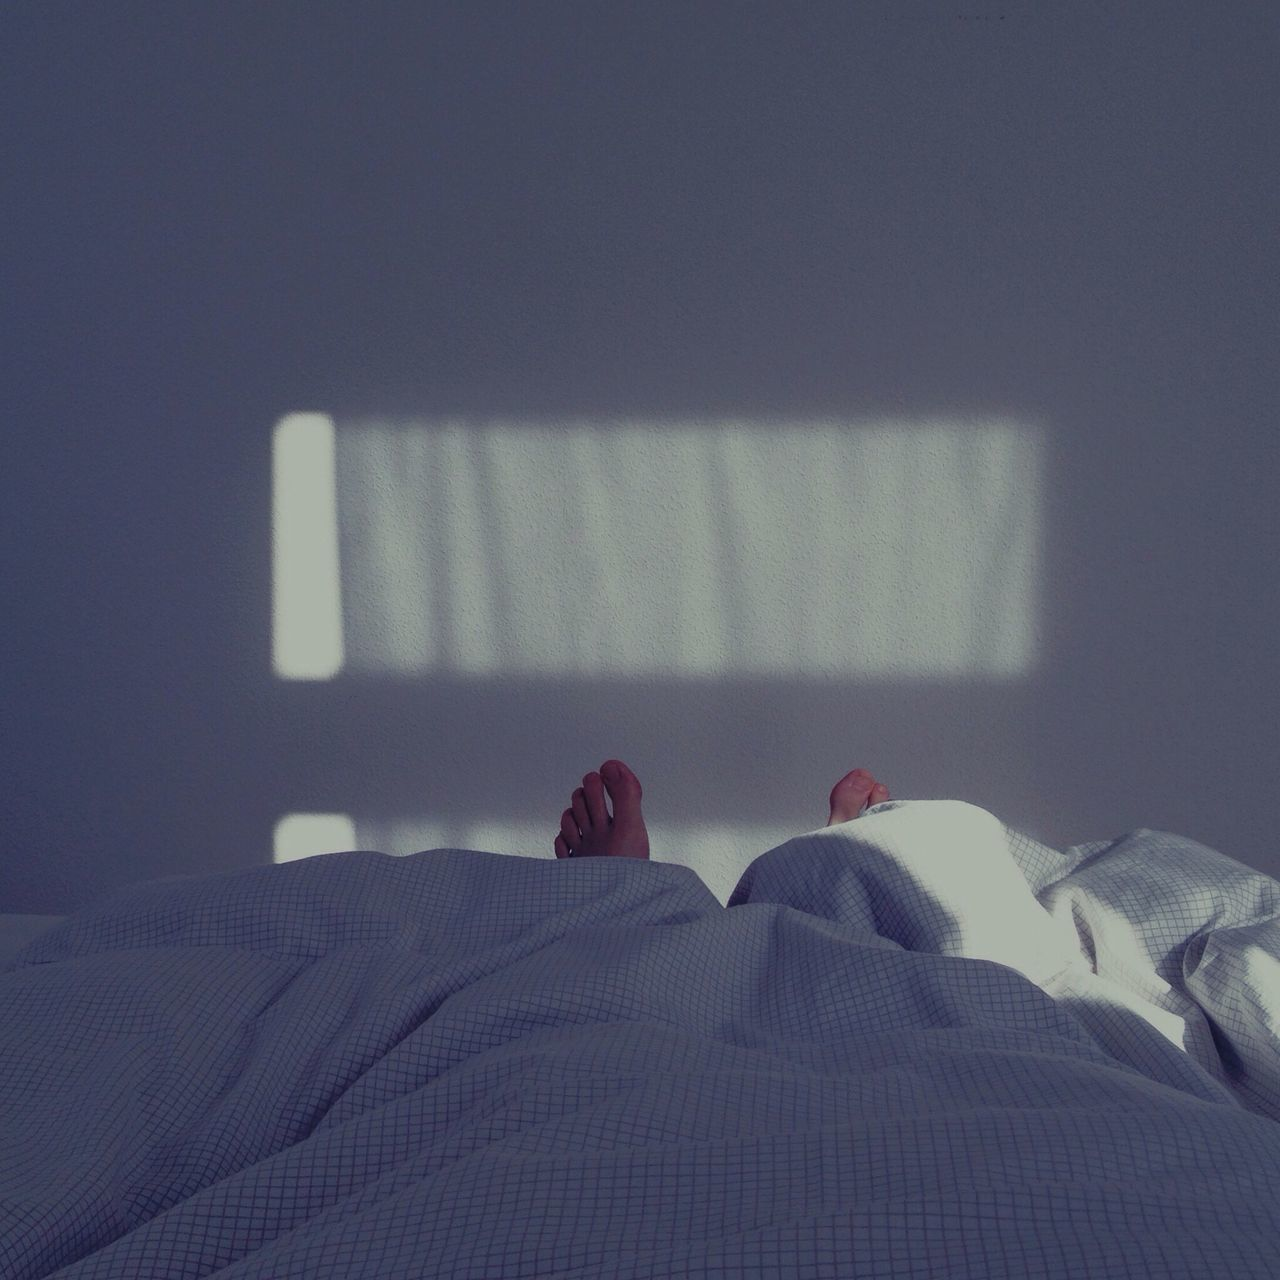 What I Value Learn & Shoot: Single Light Source Capture The Moment Learn & Shoot: Simplicity Bed Bedroom Bedtime Feet Morning Light And Shadow Light Sunshine Interior Design Interior Laying In Bed Cozy Lazy The Secret Spaces